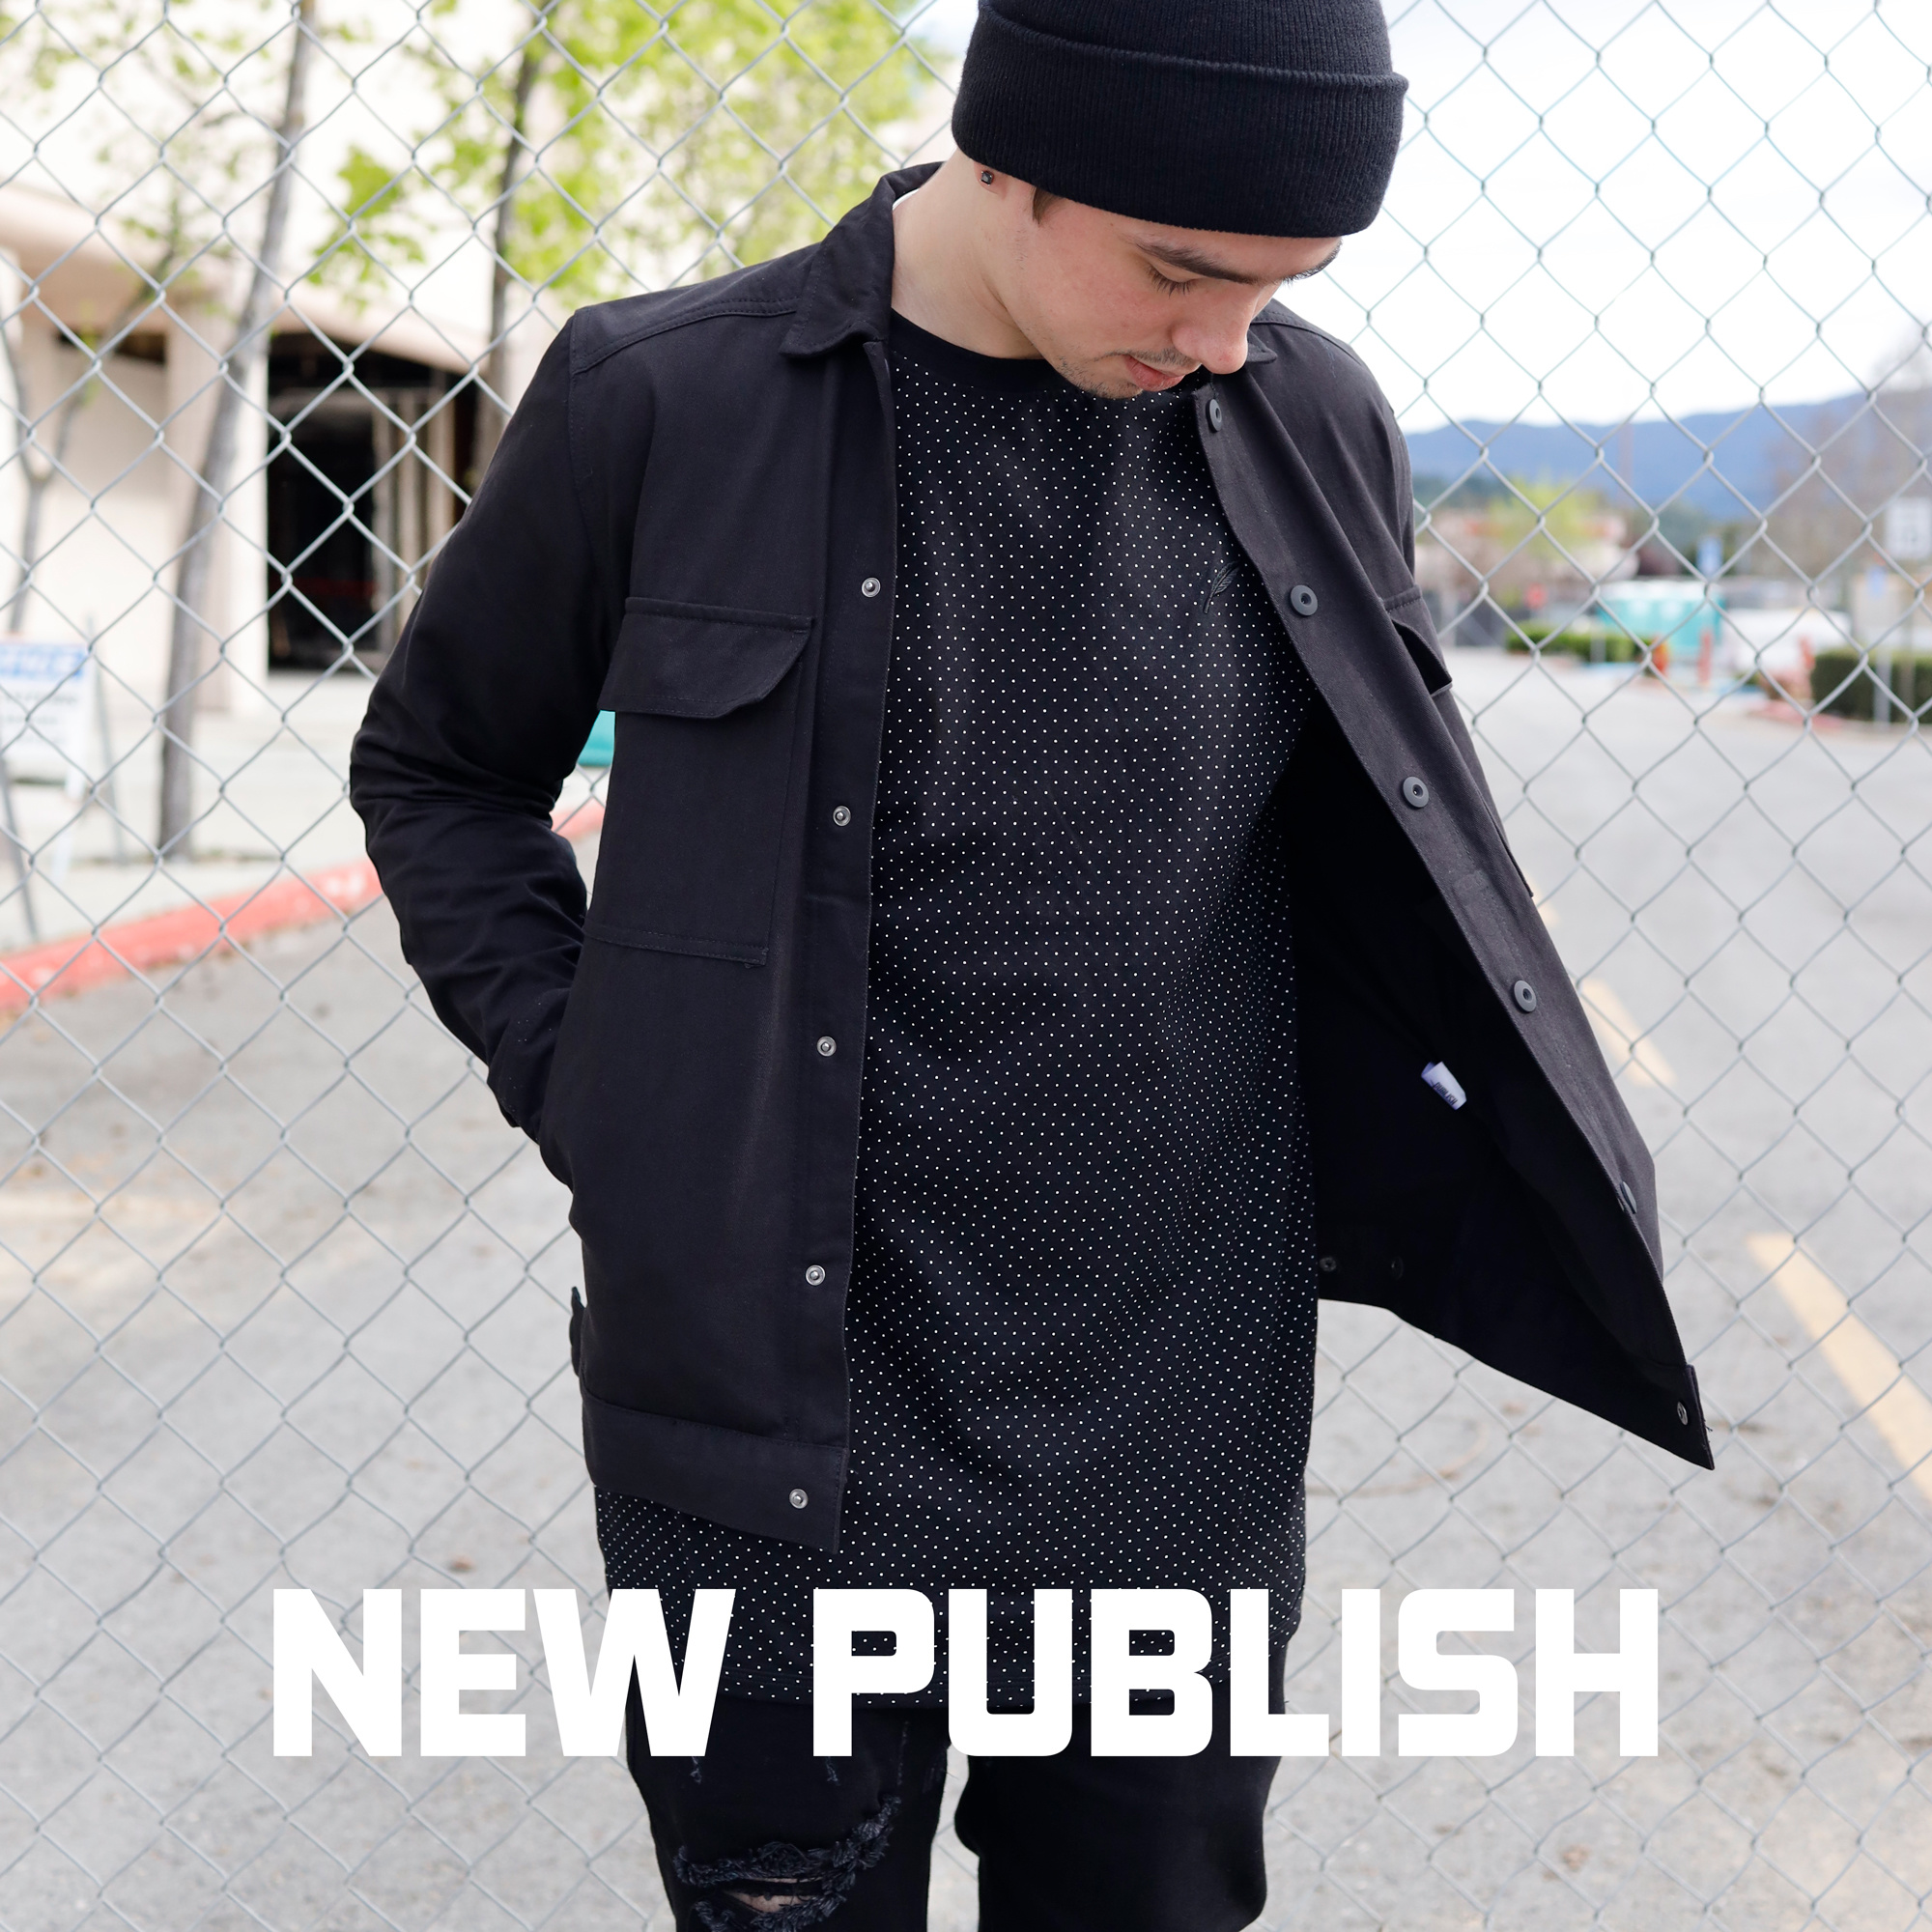 Publish Brand now available! New Brand Alert!